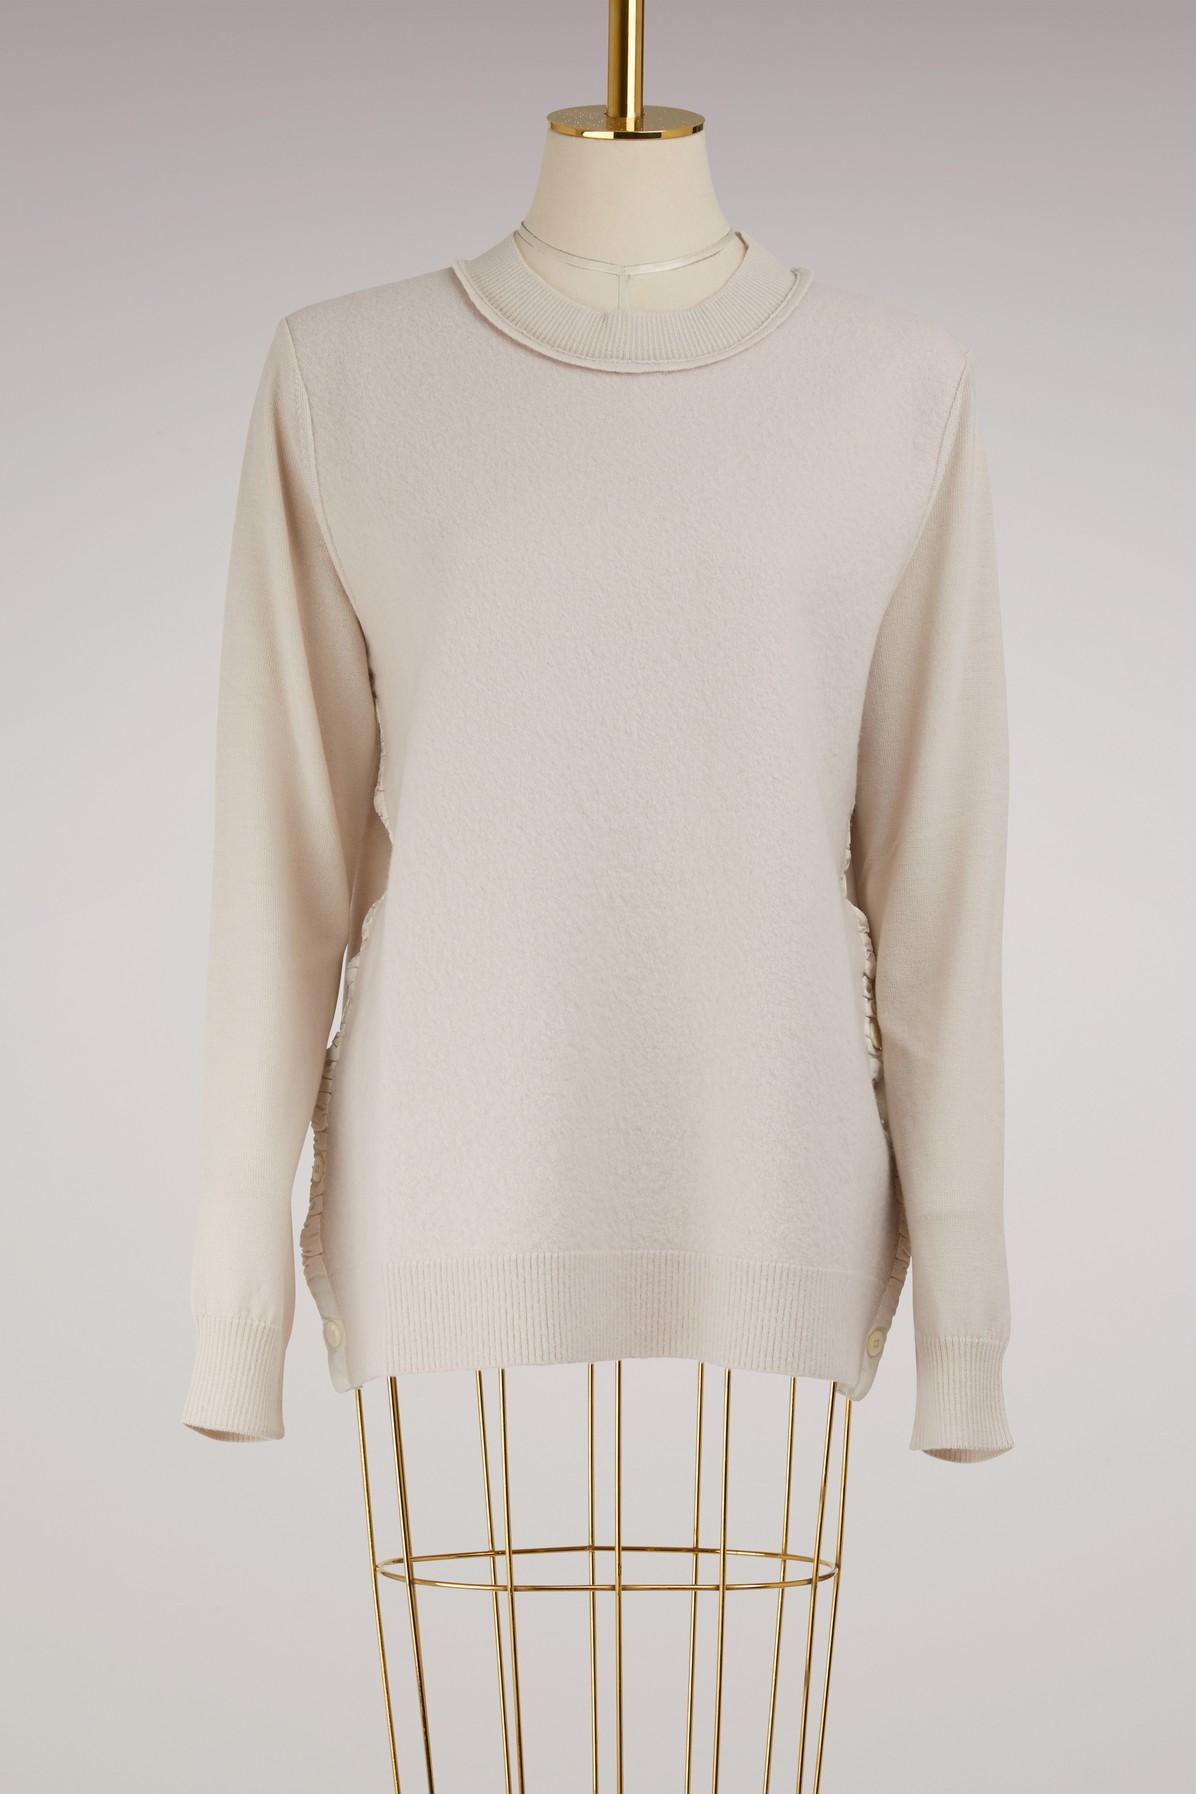 Maison Margiela Wool Sweater With Buttons In Beige